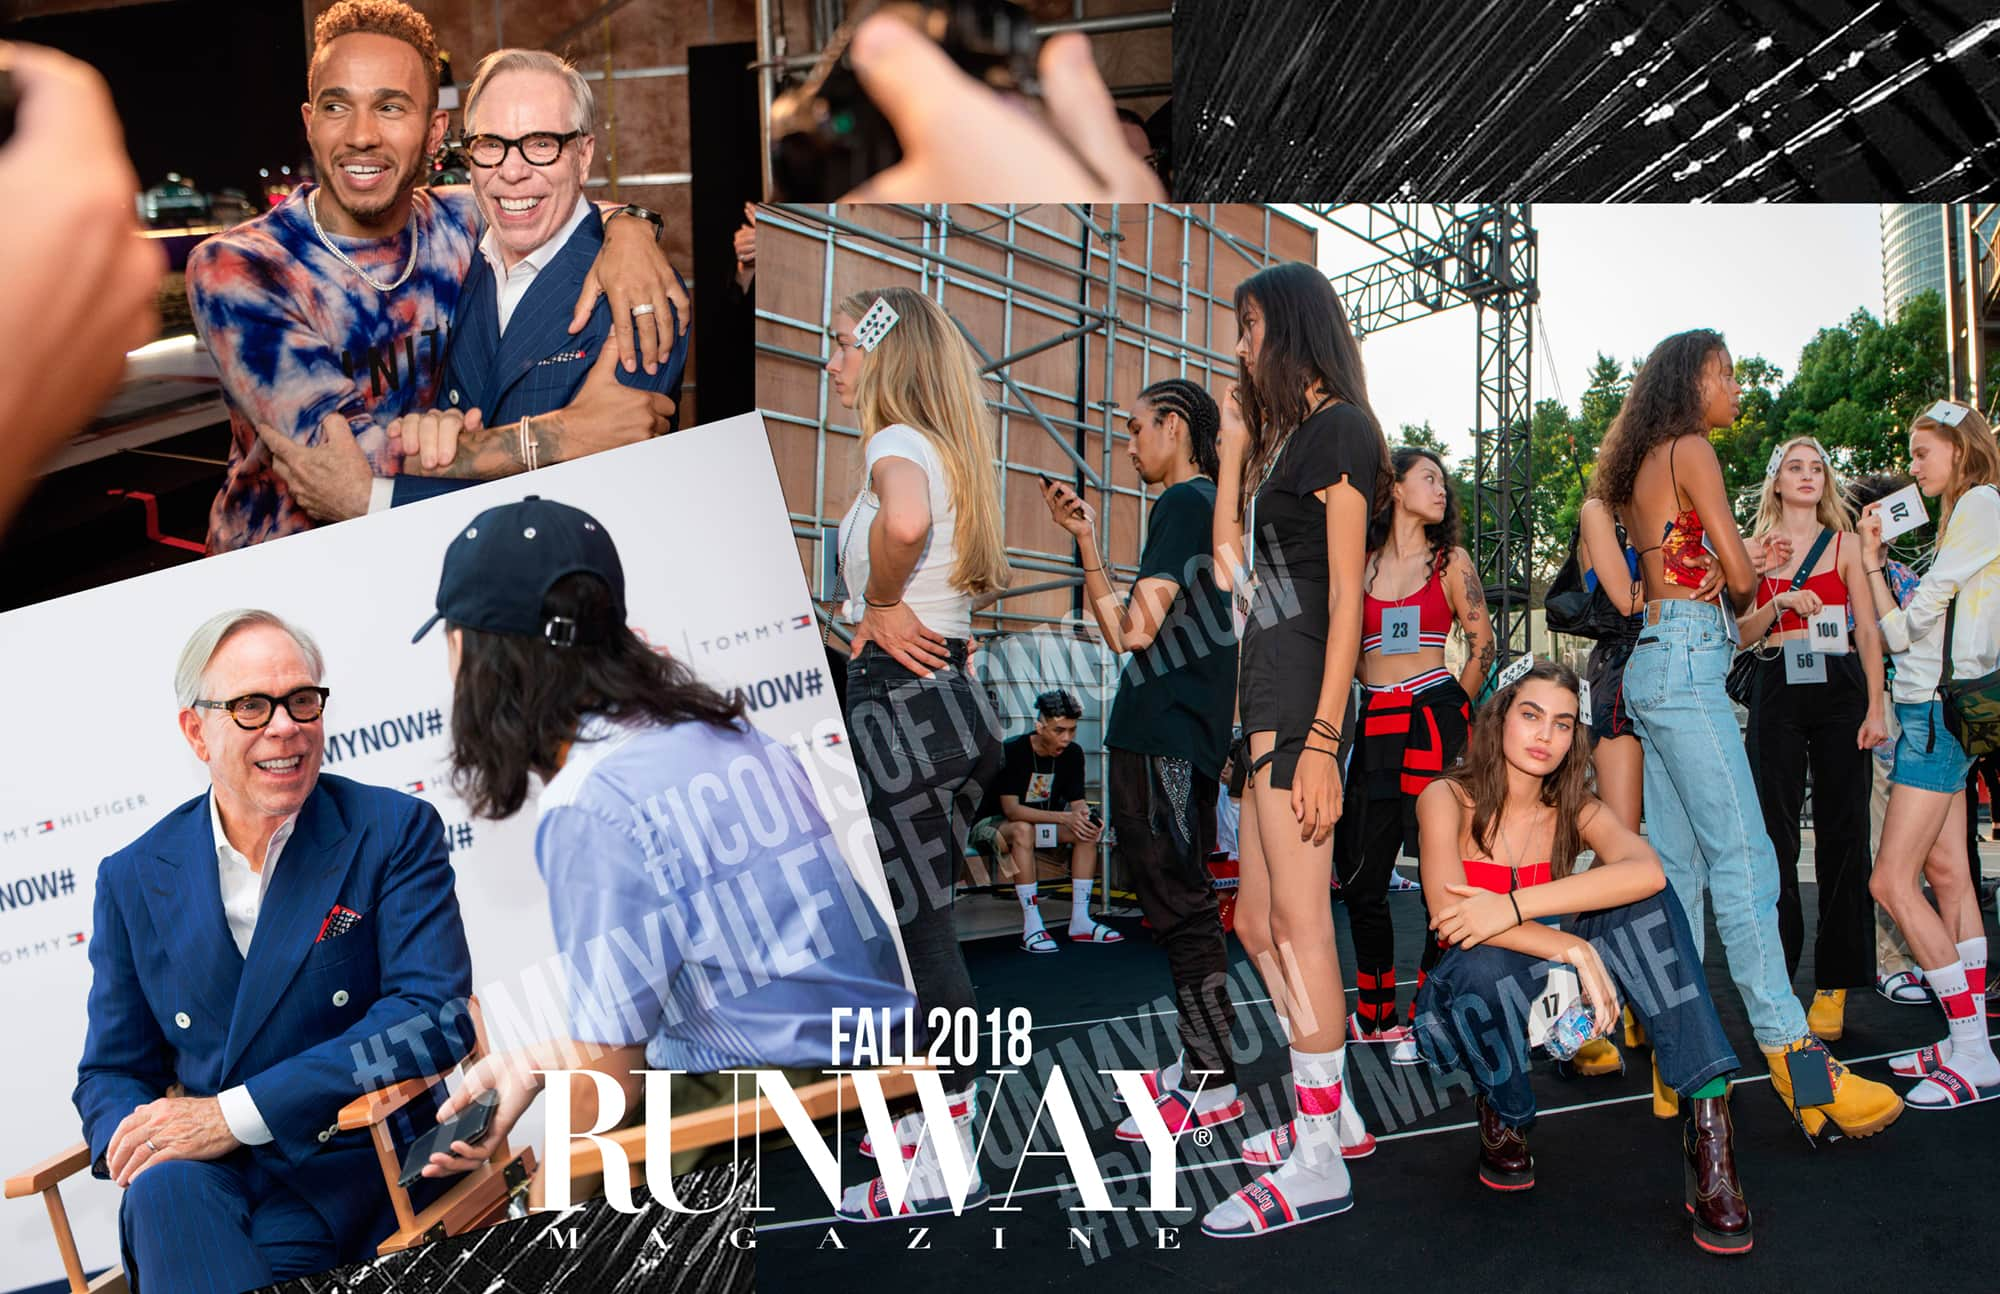 TOMMYNOW ICONS Fall 2018 Shanghai show by RUNWAY MAGAZINE